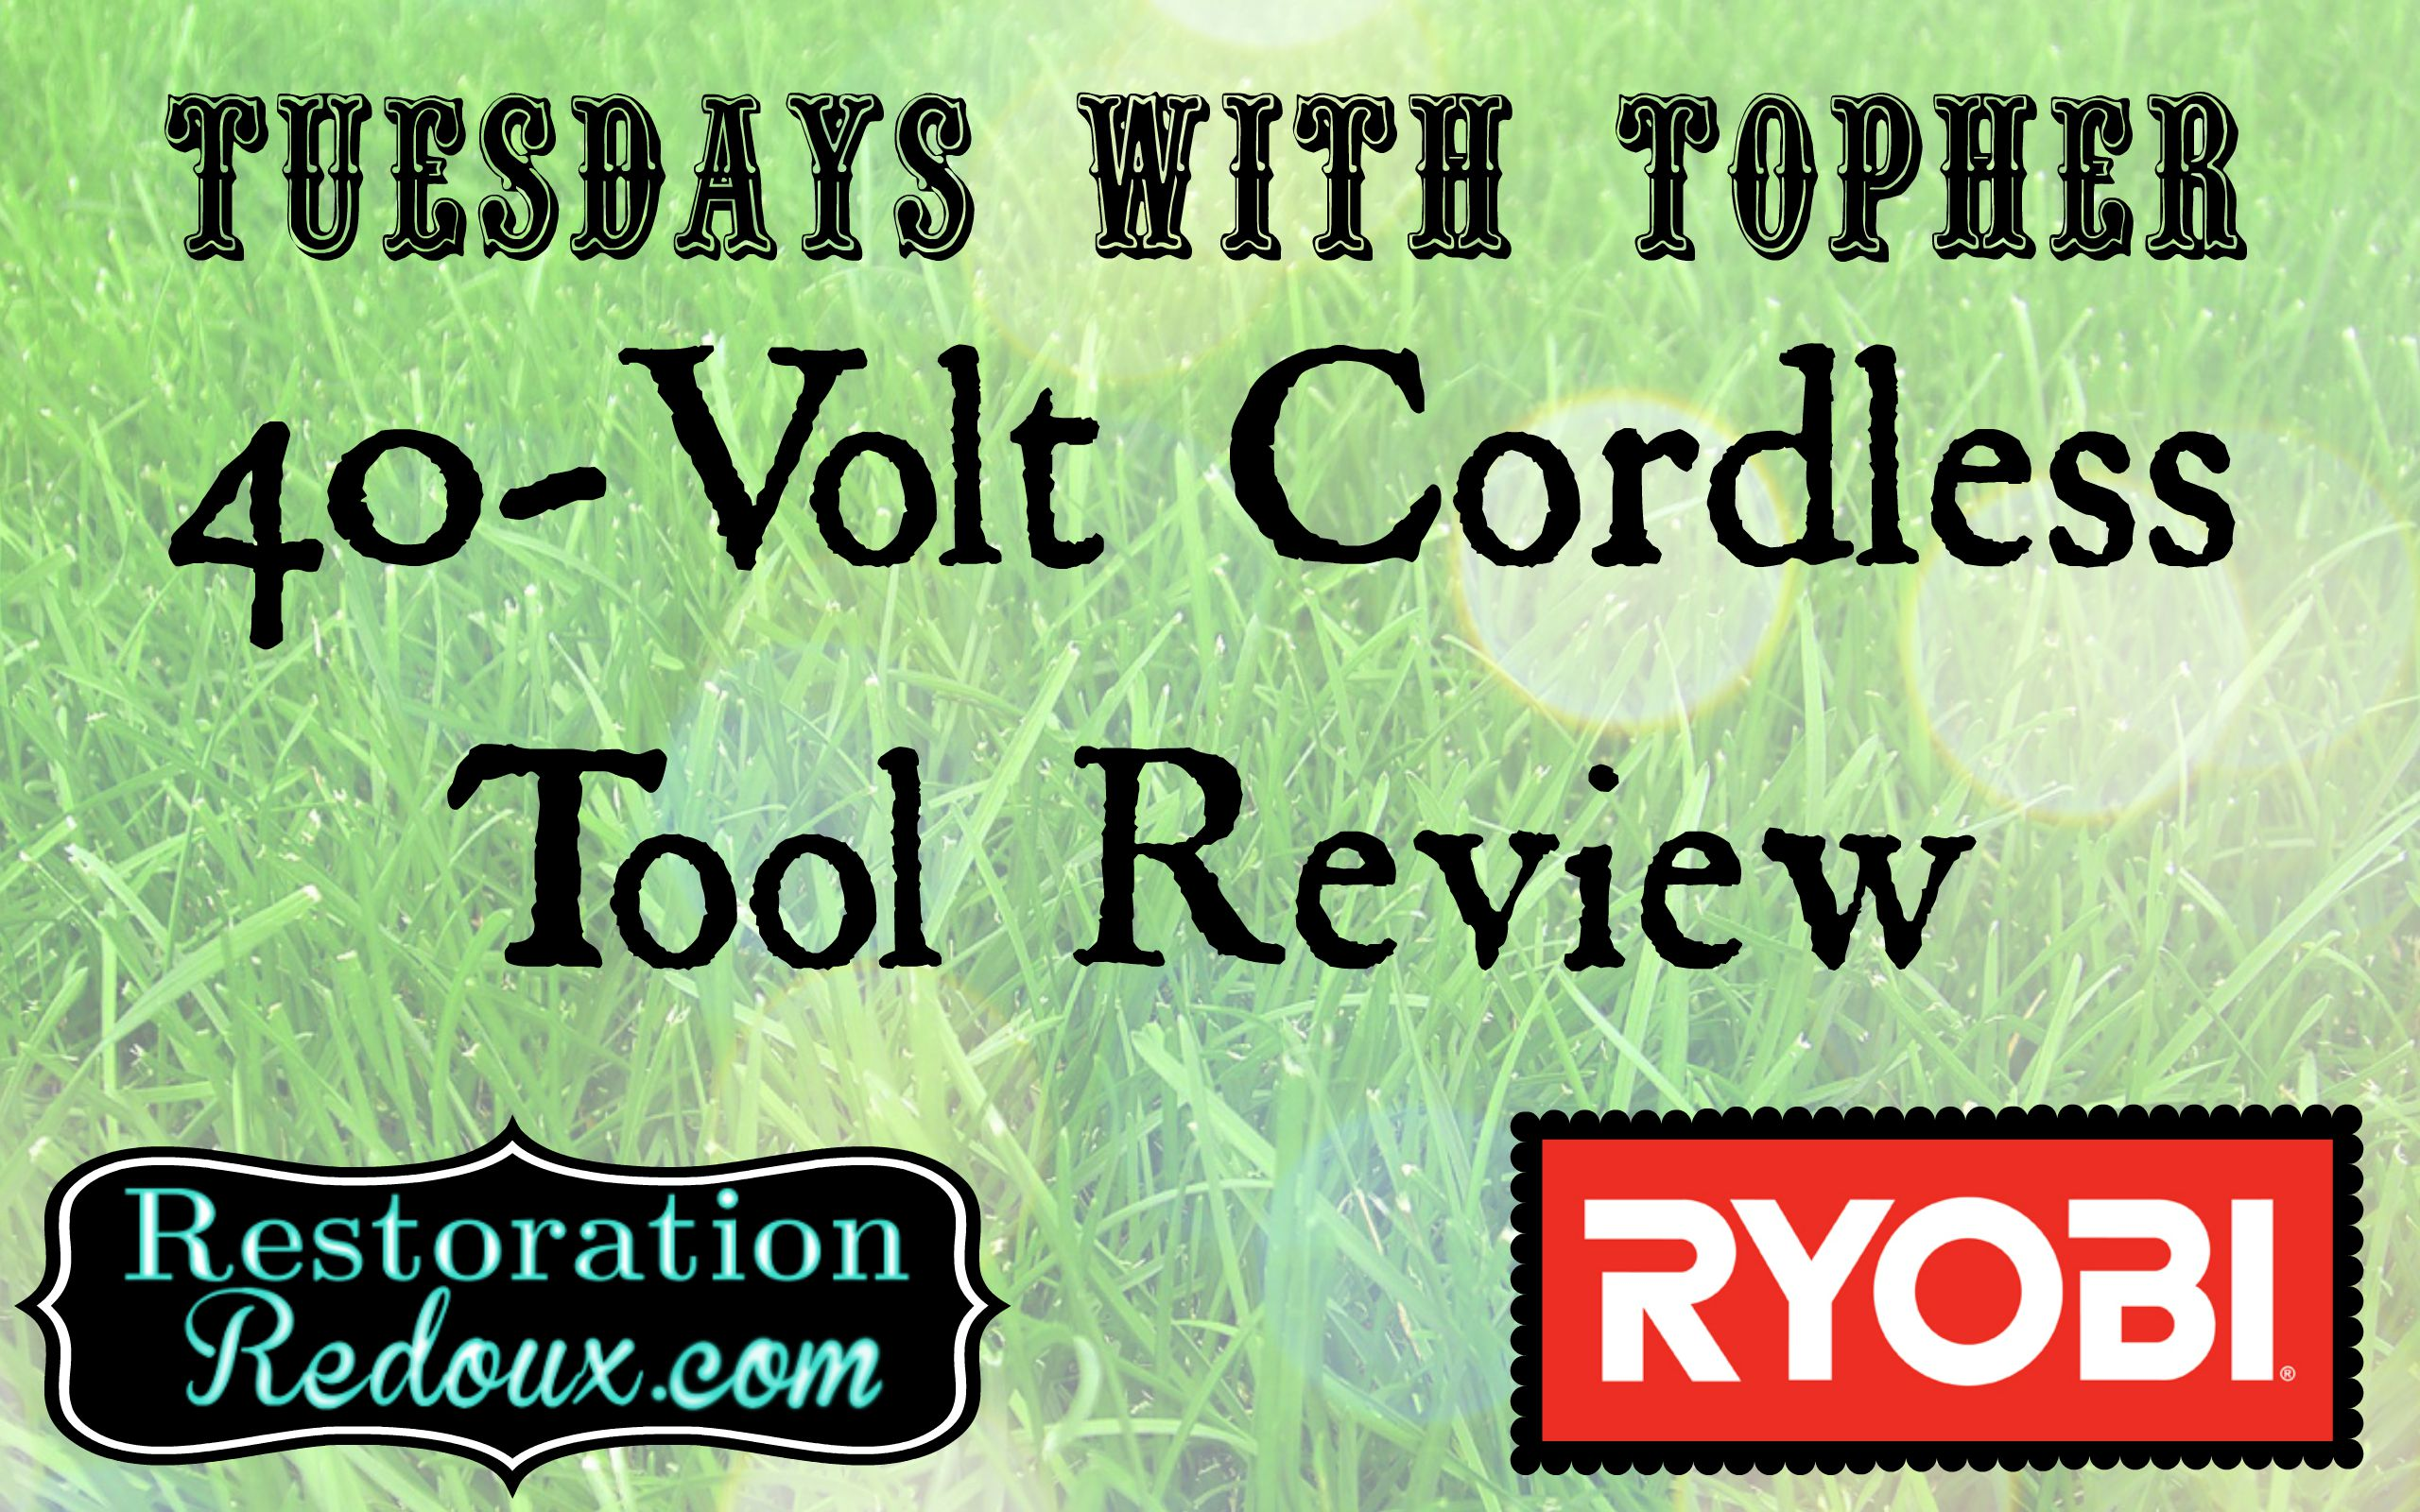 Tuesdays With Topher: Ryobi Cordless Tool Review - Daily ...